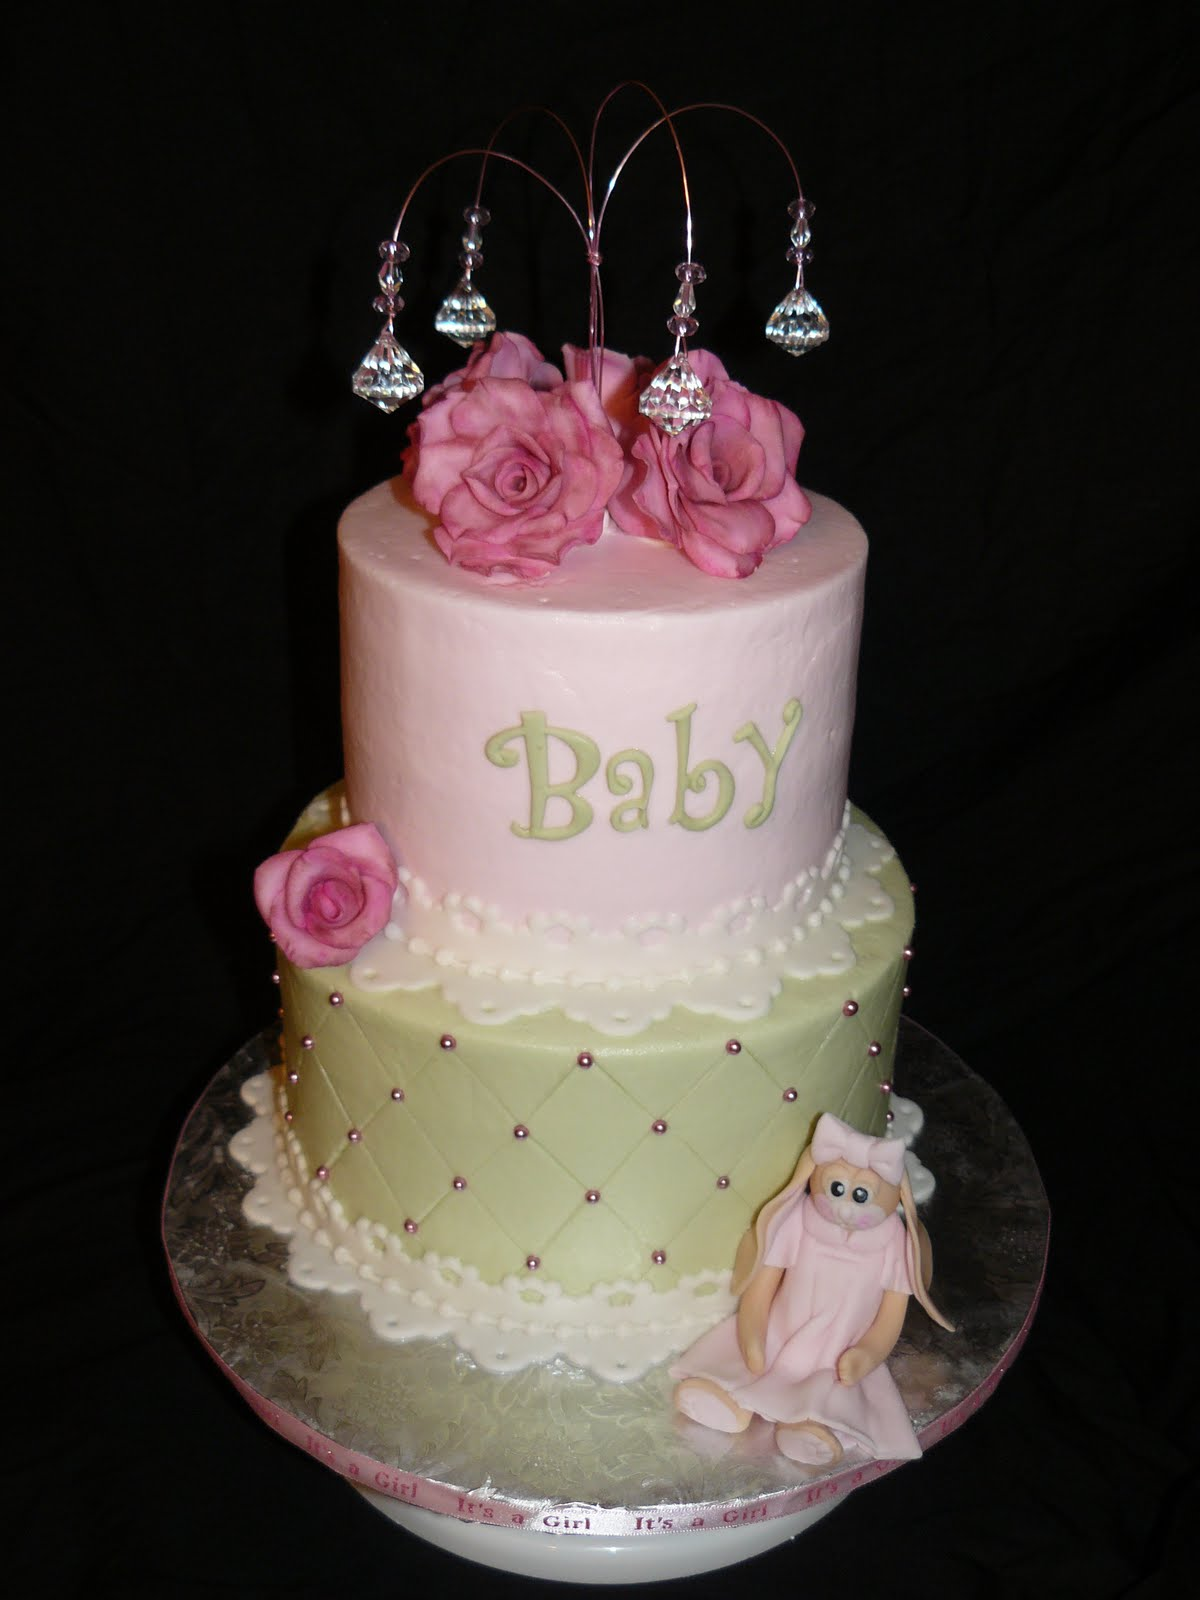 1000+ images about Baby shower cakes on Pinterest